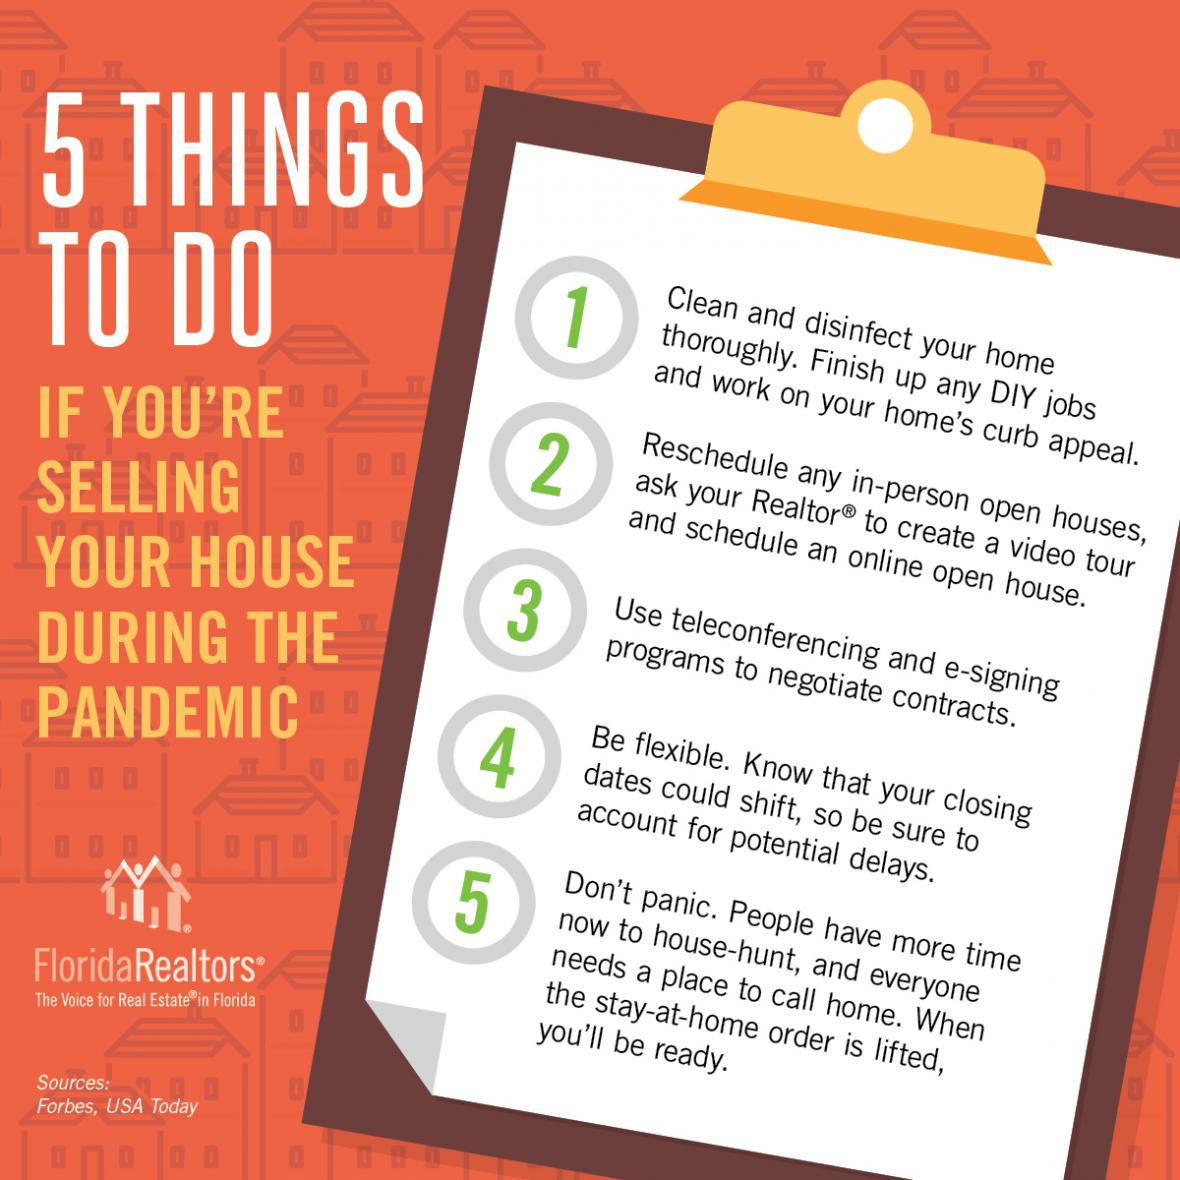 5 Things to Do If you're selling your house during the pandemic infographic